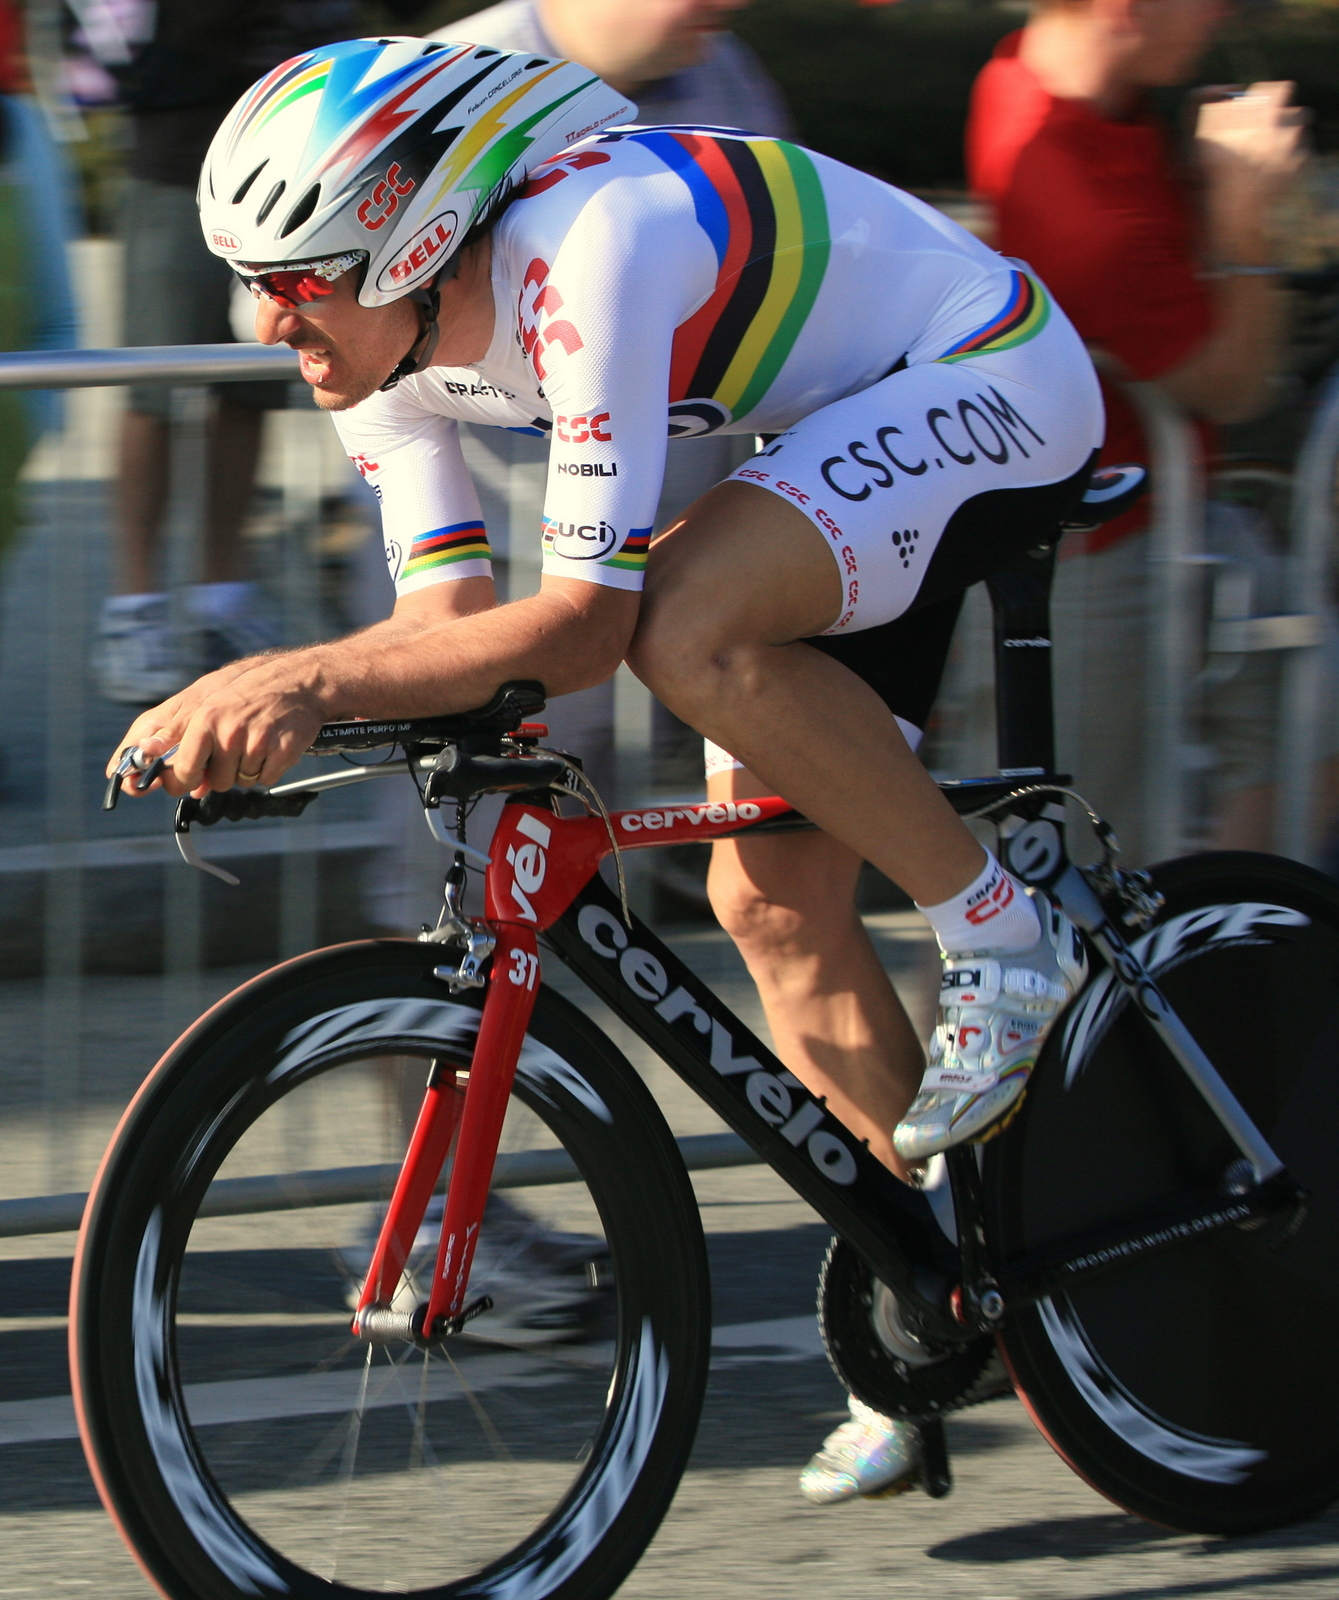 Fabian_Cancellara_-_Tour_Of_California_Prologue_2008_(1)